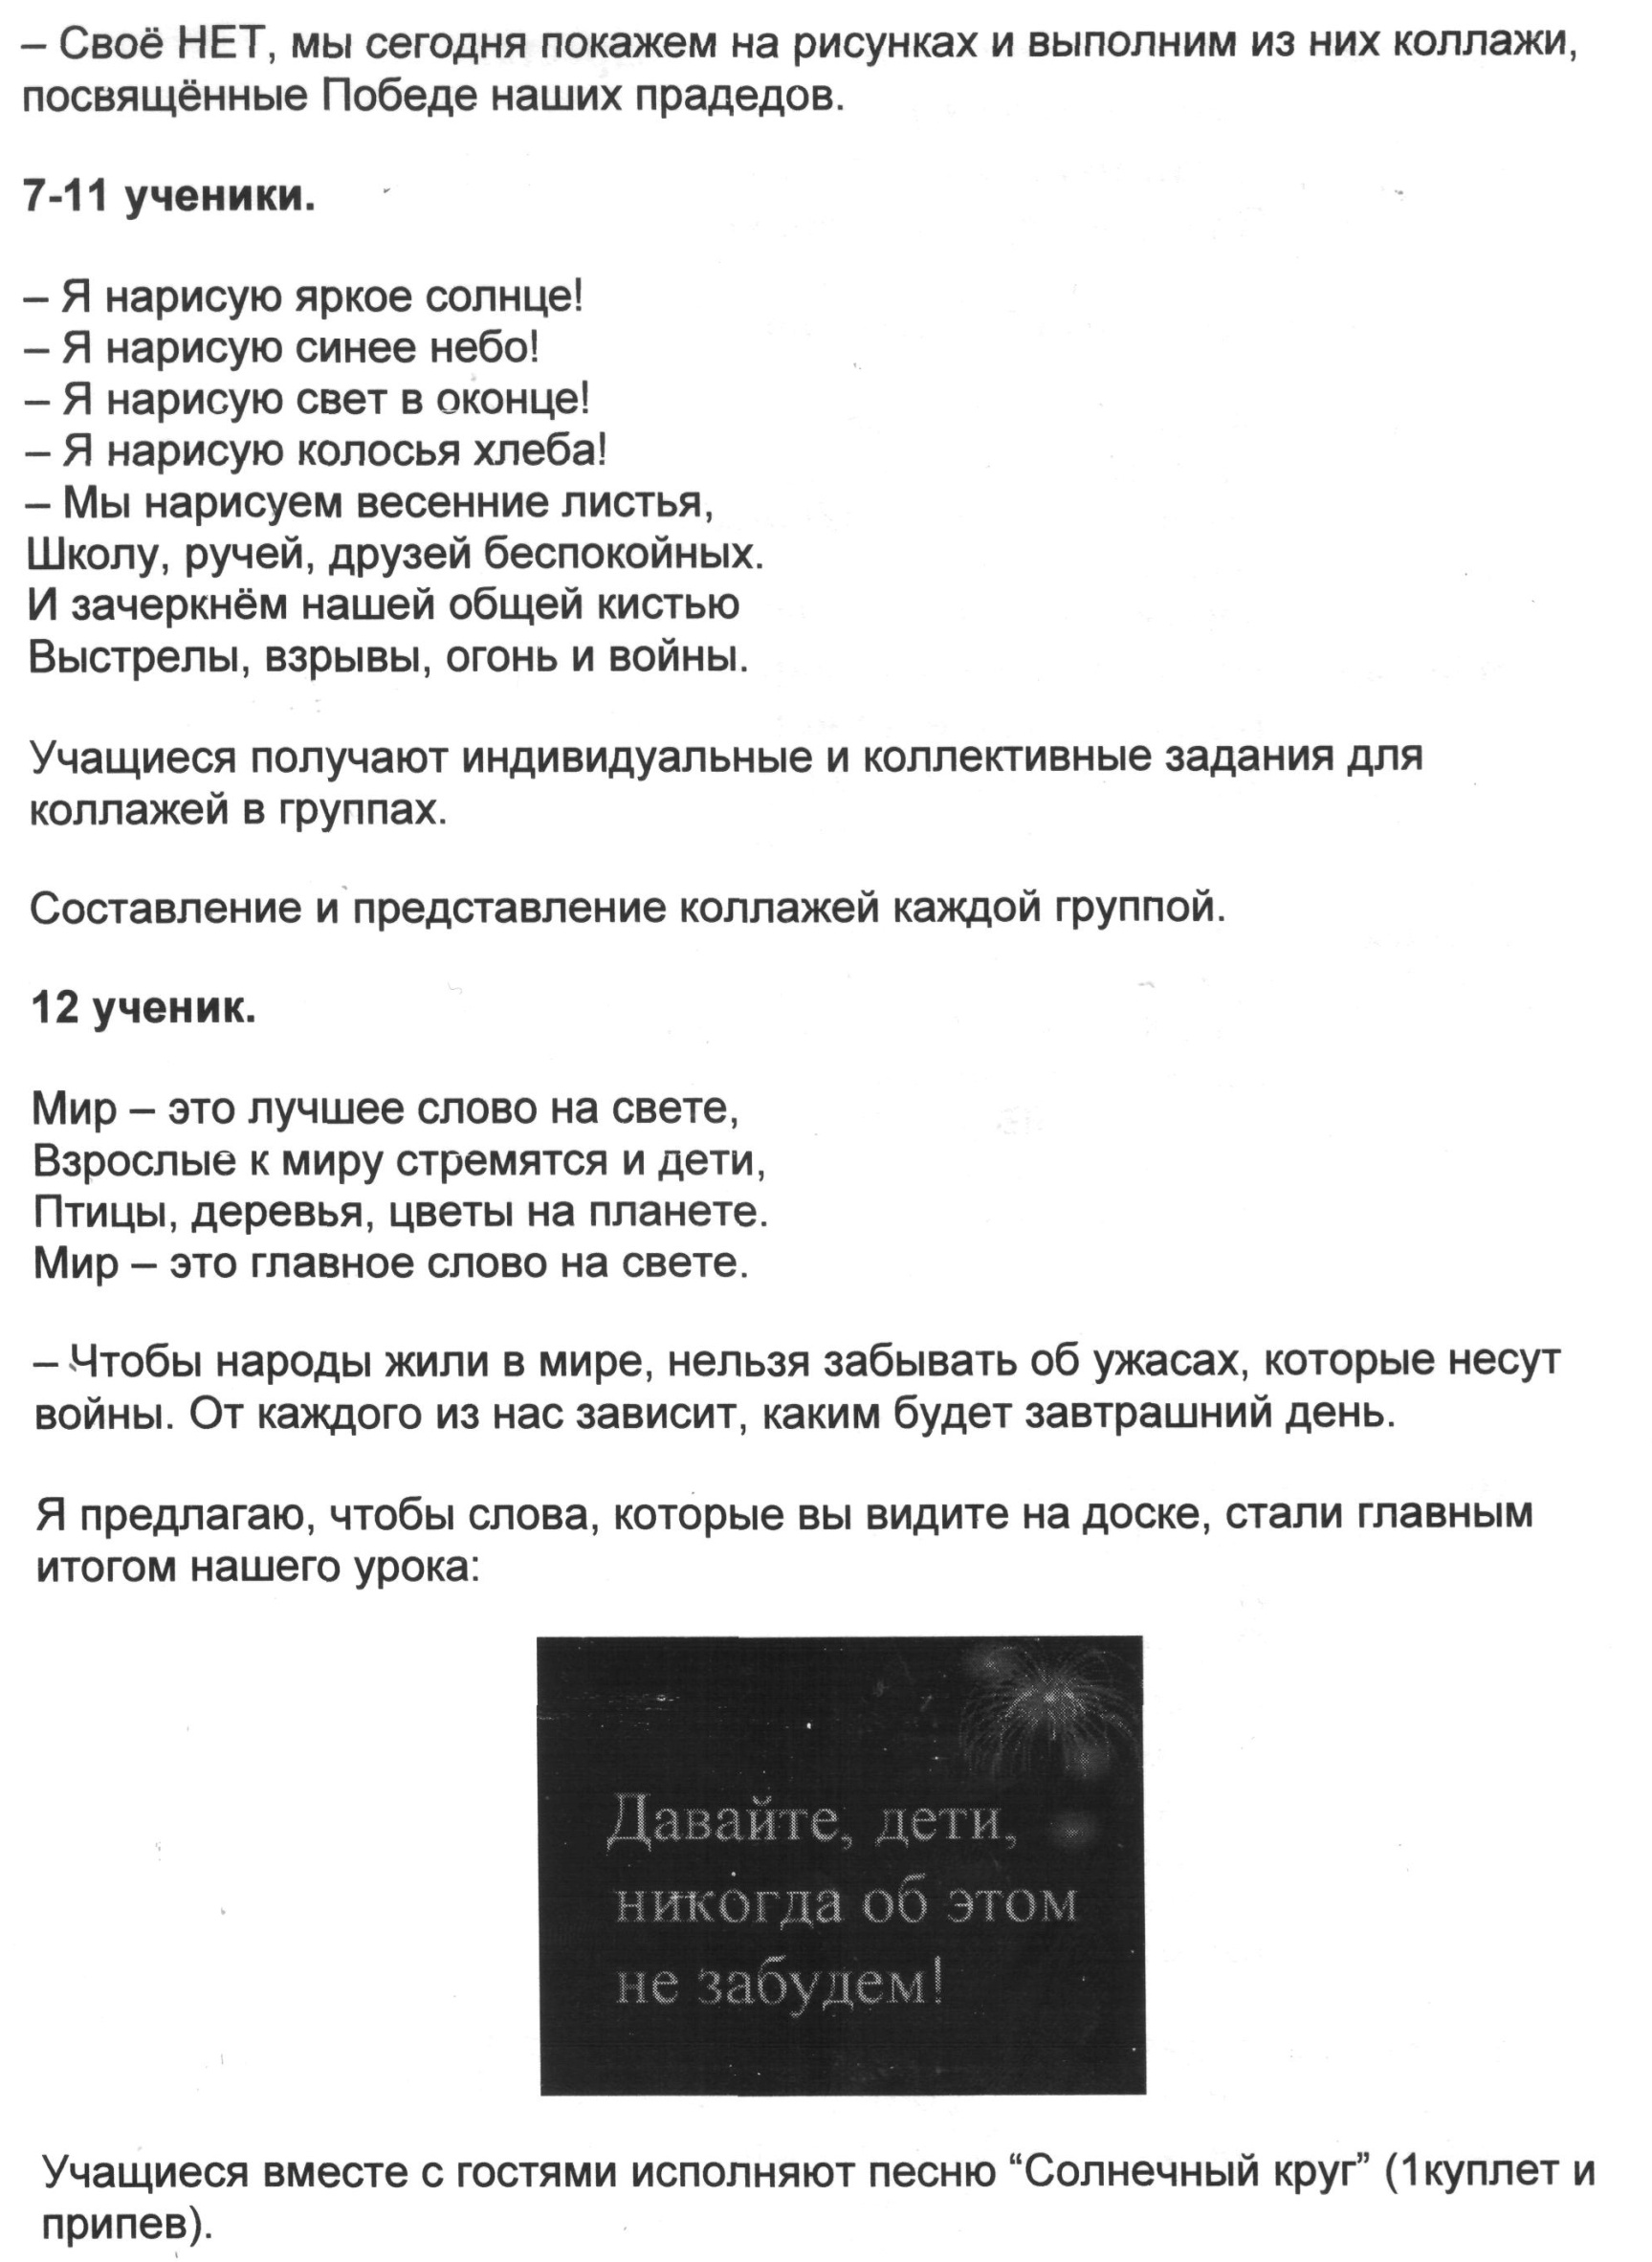 C:\Users\user\Desktop\Умит апай\Новая папка\11.jpg